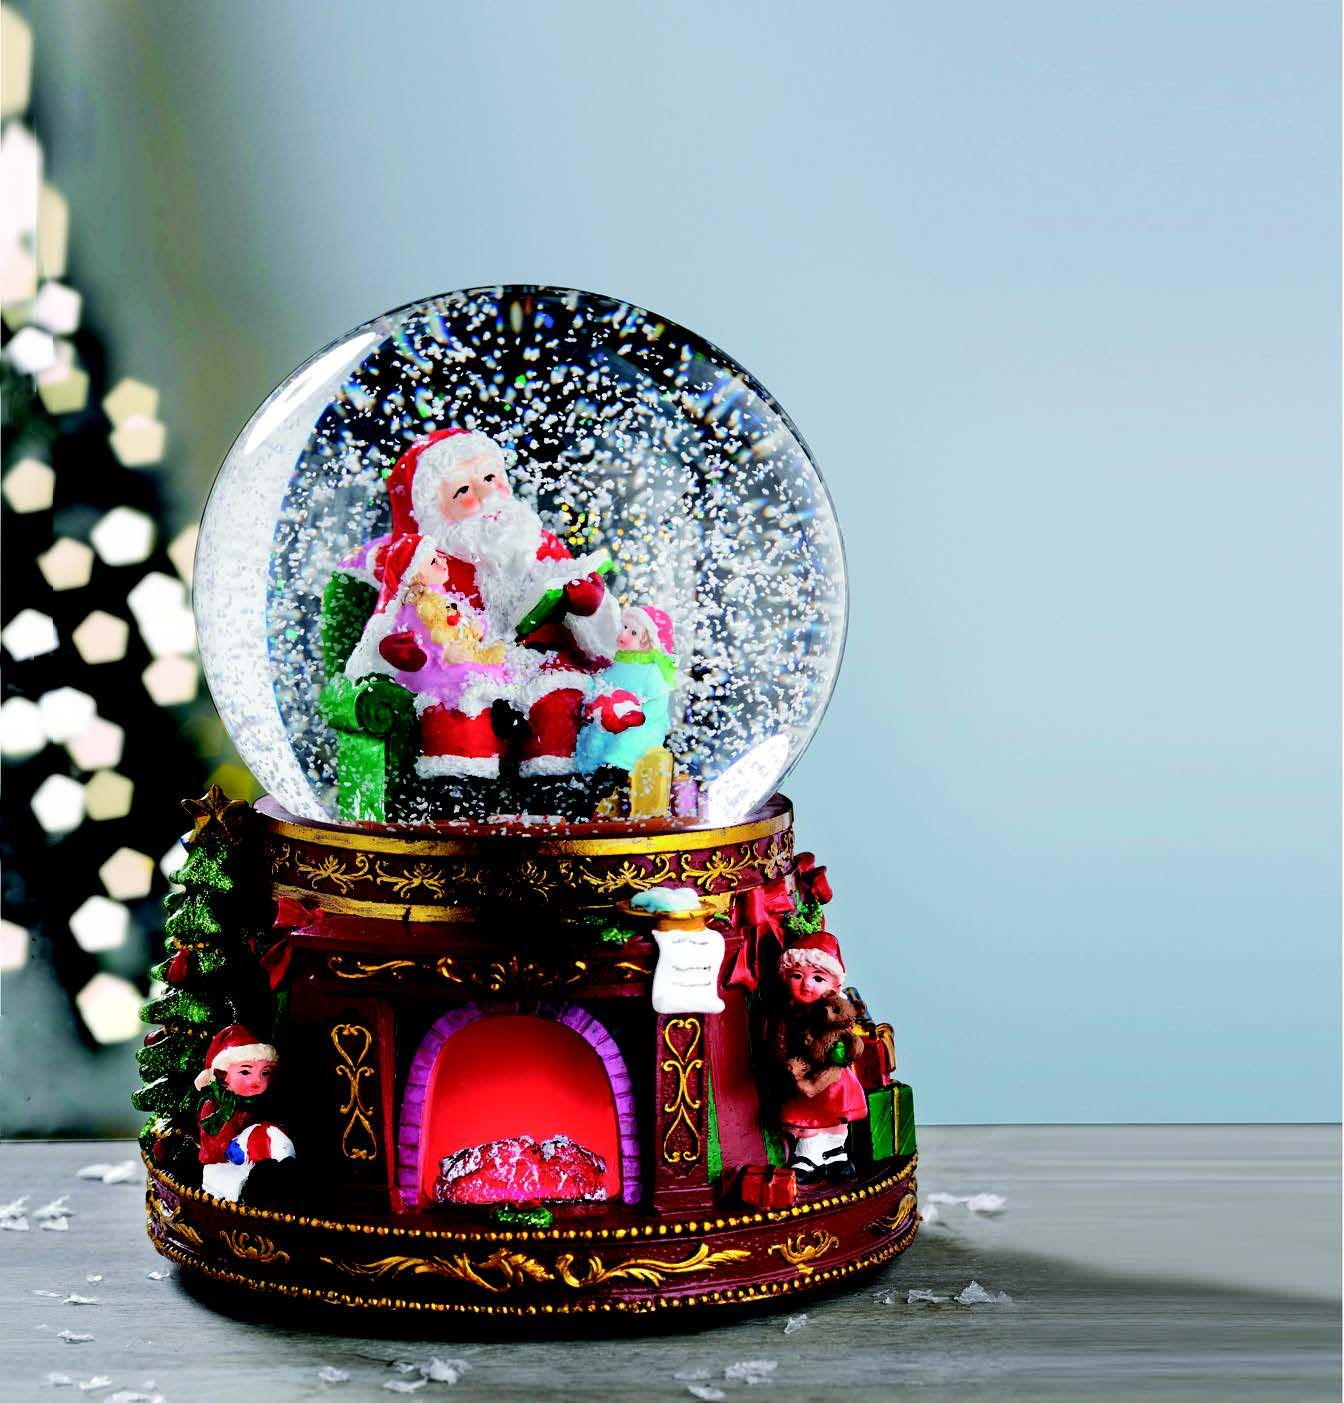 A musical snow globe with santa and christmas tree scene complete